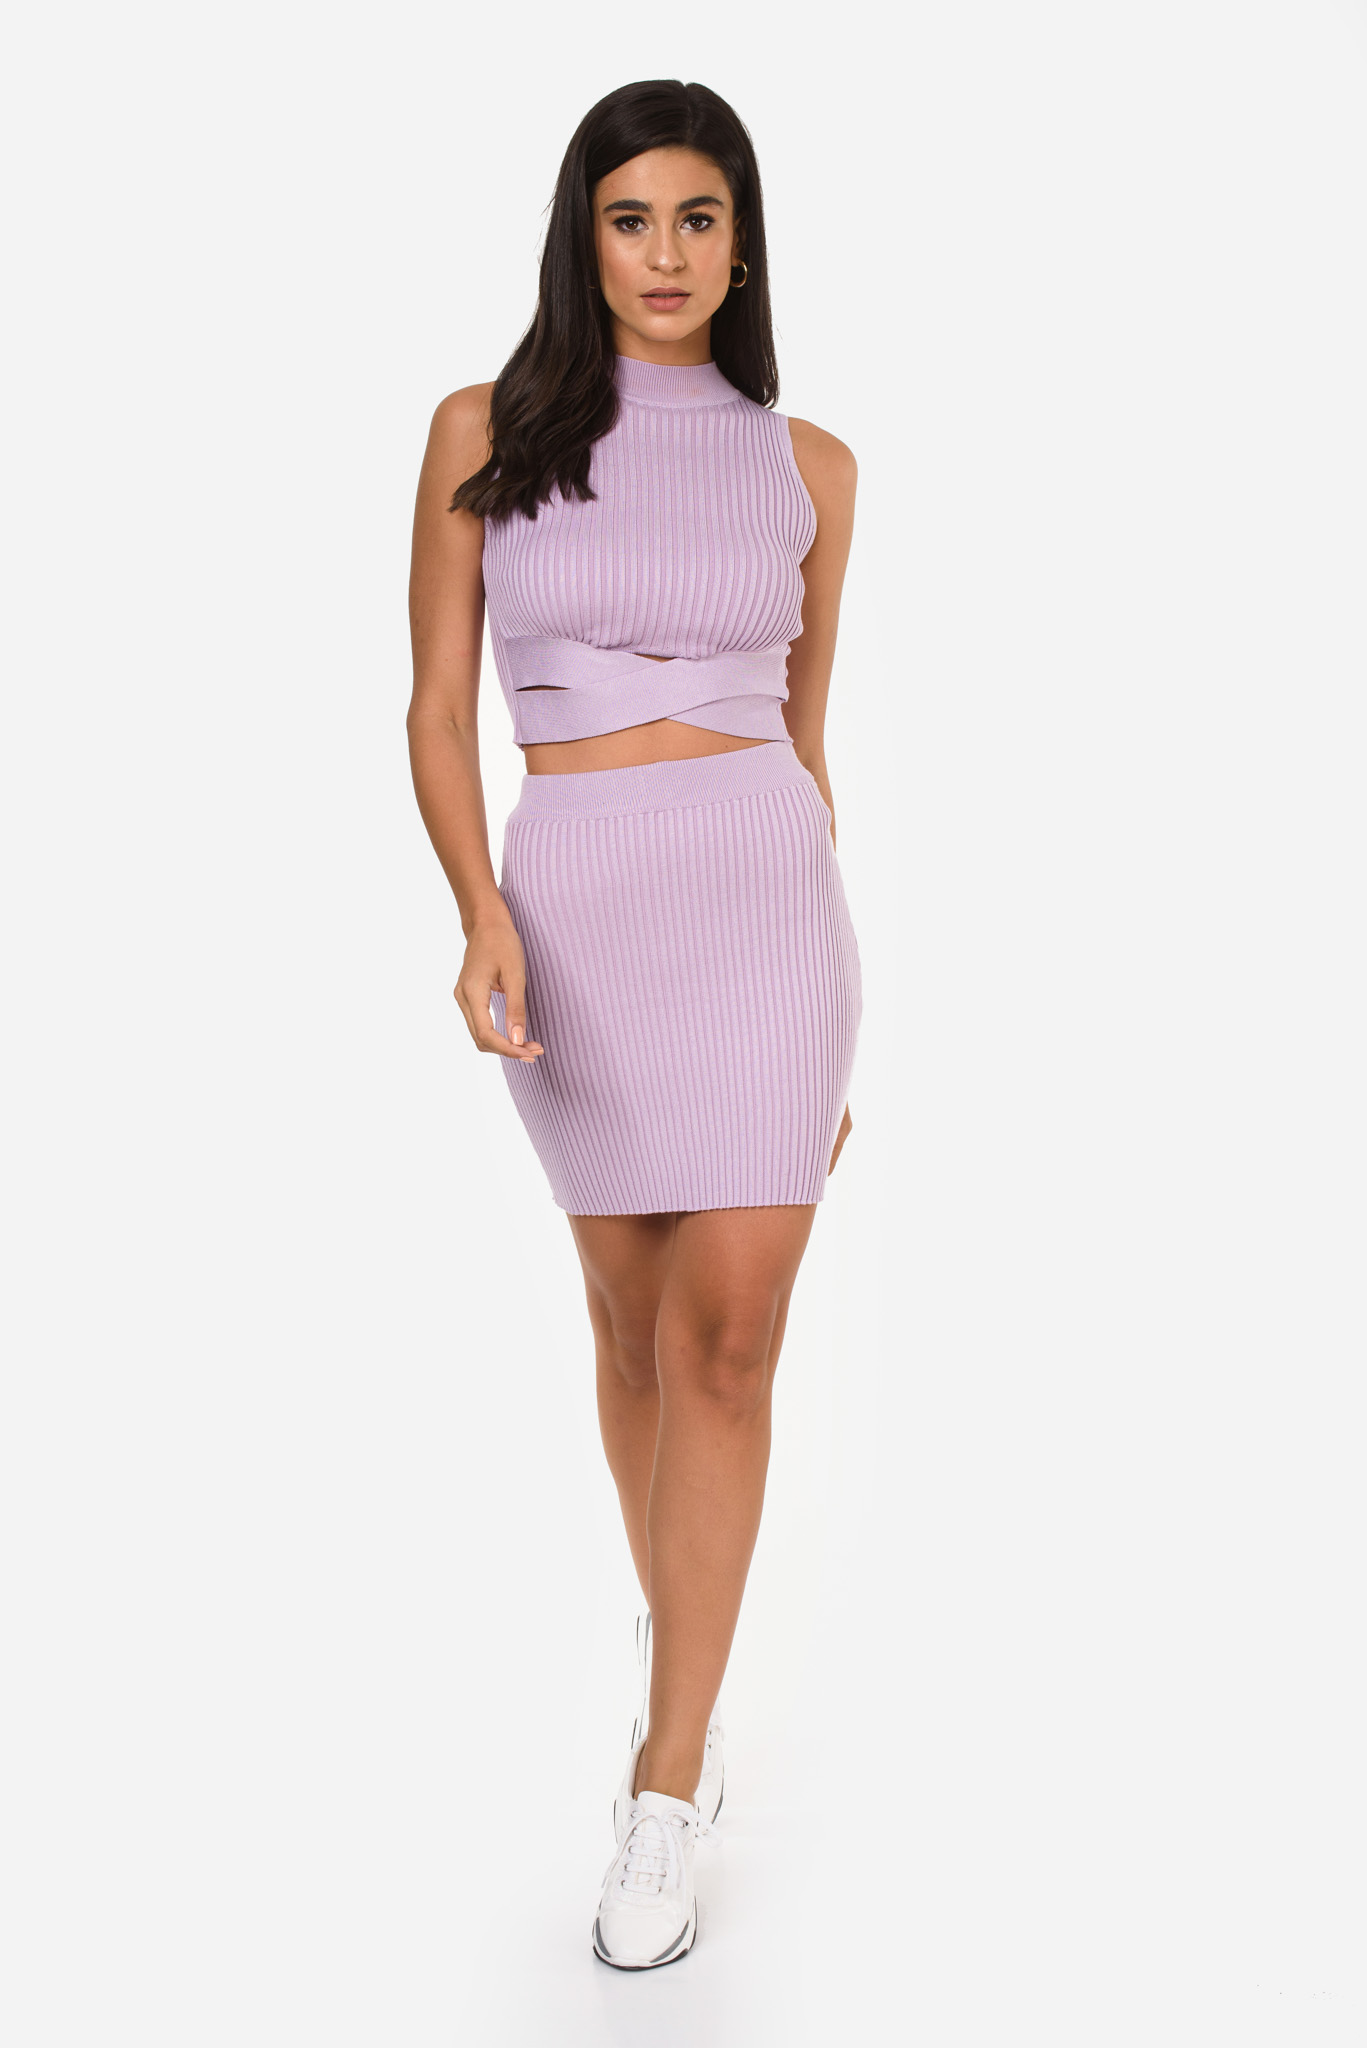 Stephanie Knit Set in Lilac